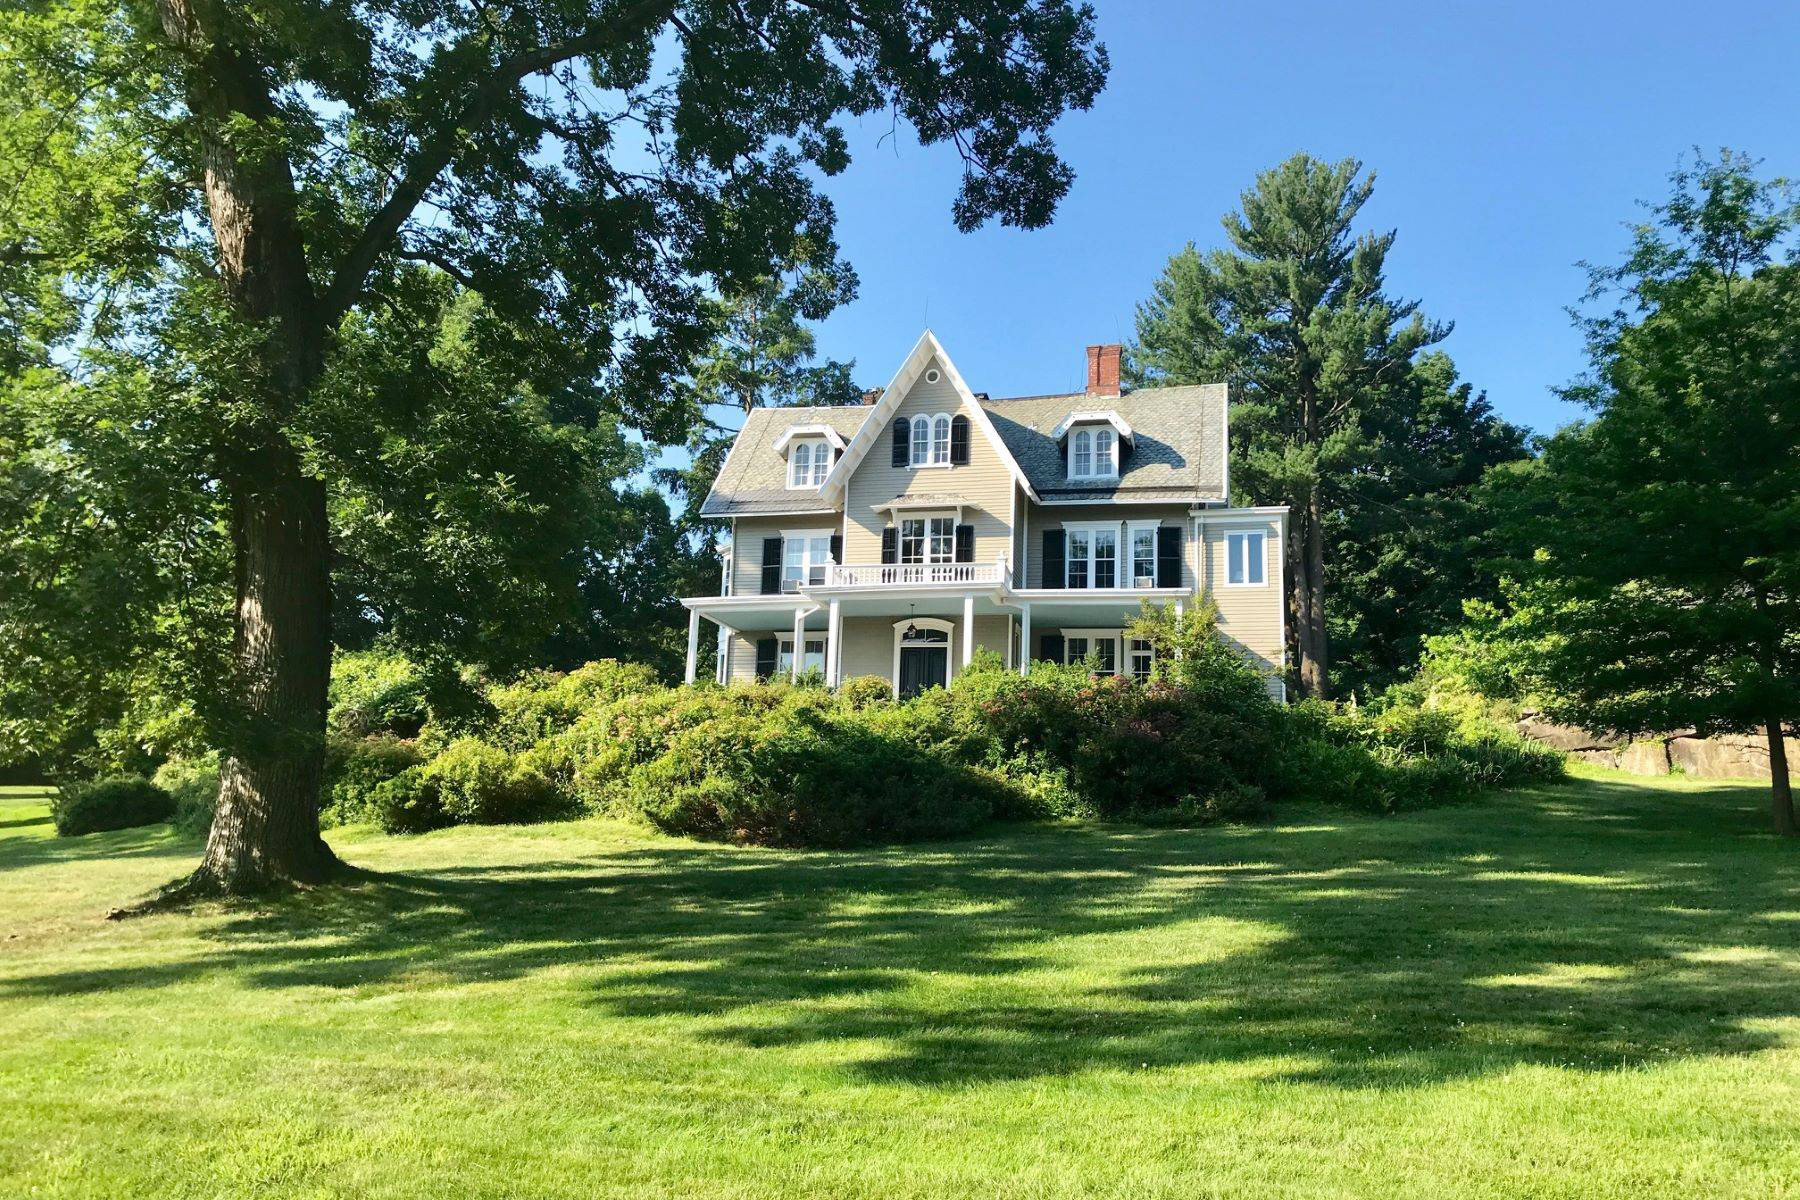 Gothic houses on the market right now: New York Gothic revival home for sale